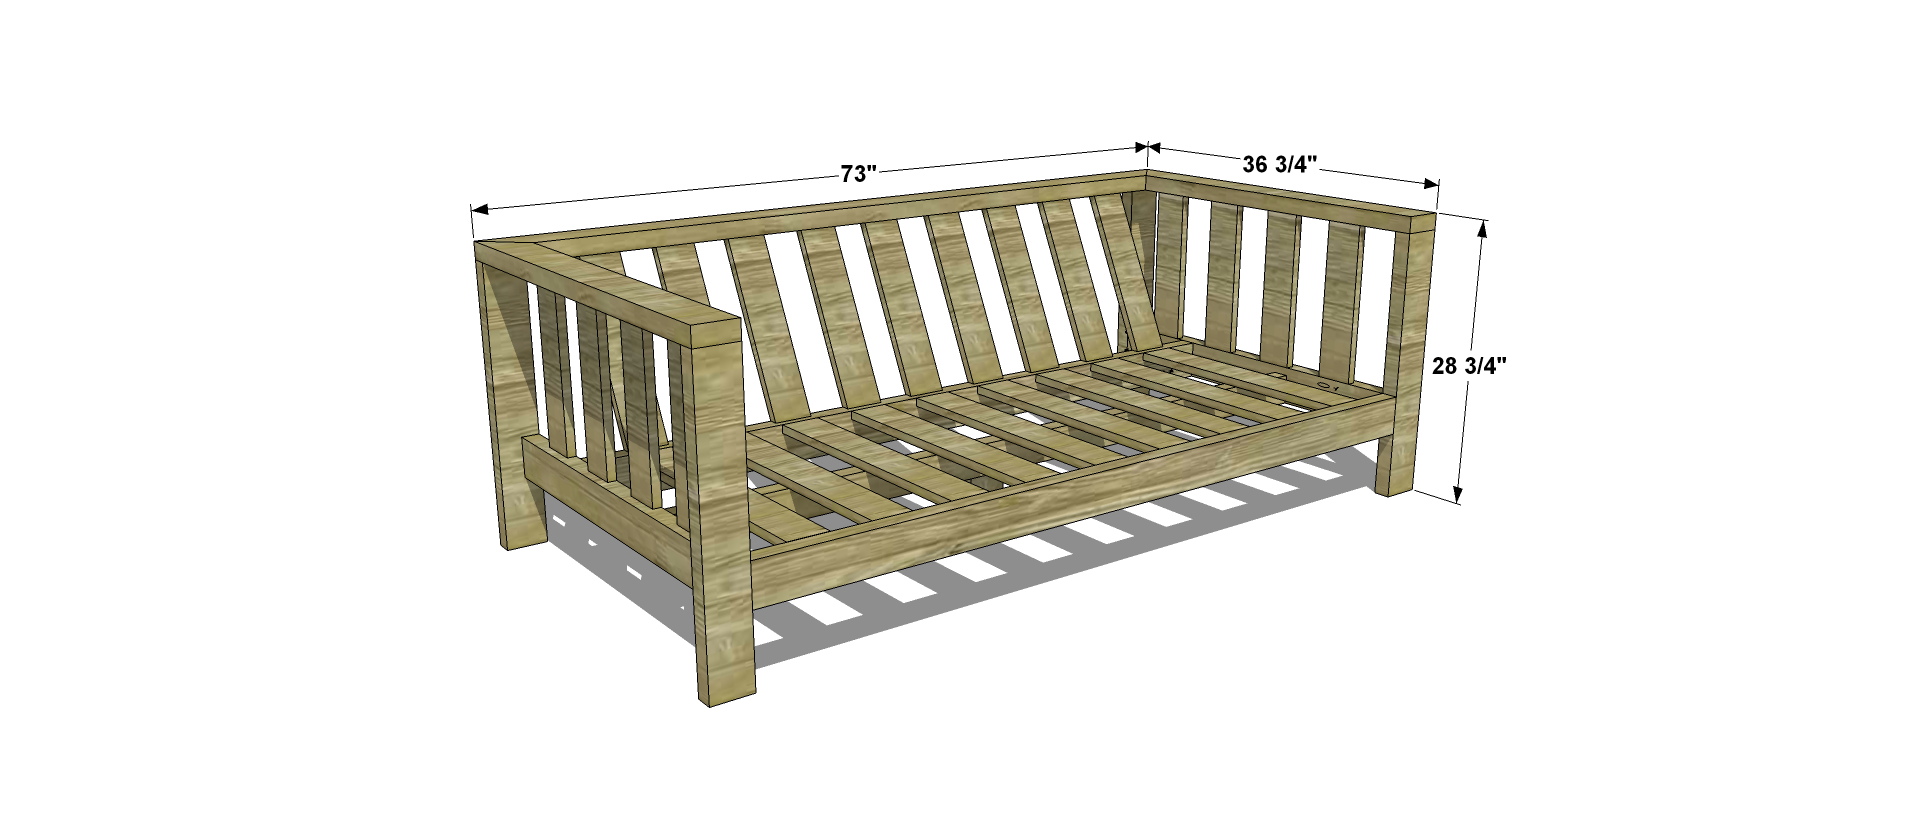 dimensions for free diy furniture plans // how to build an outdoor